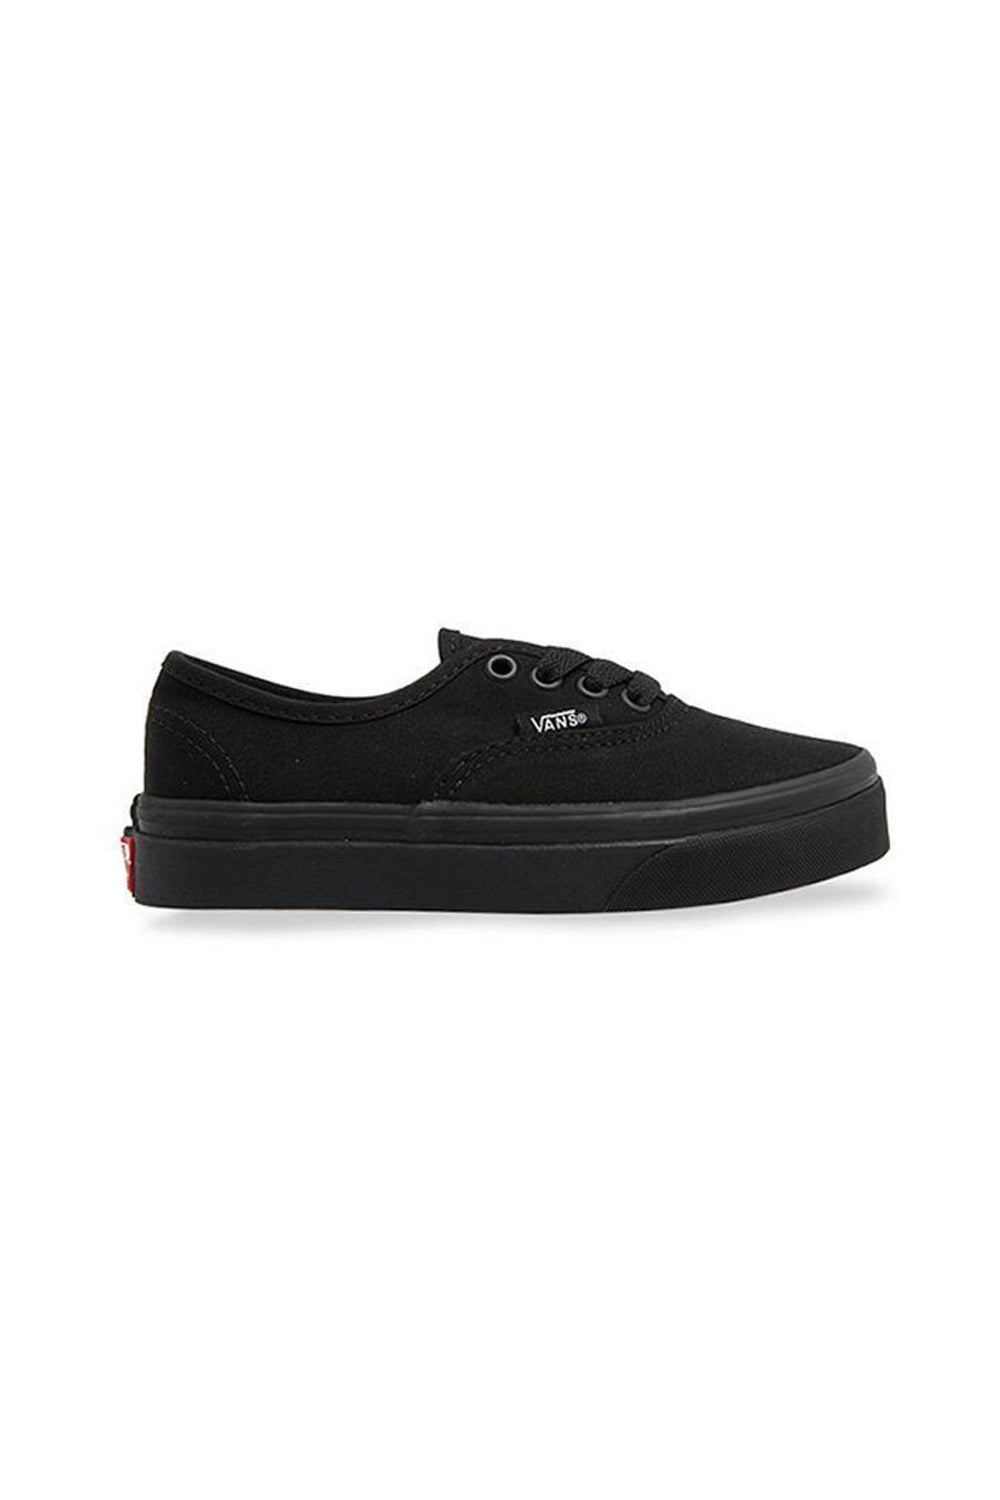 Vans Authentic Kids Black / Black Shoe